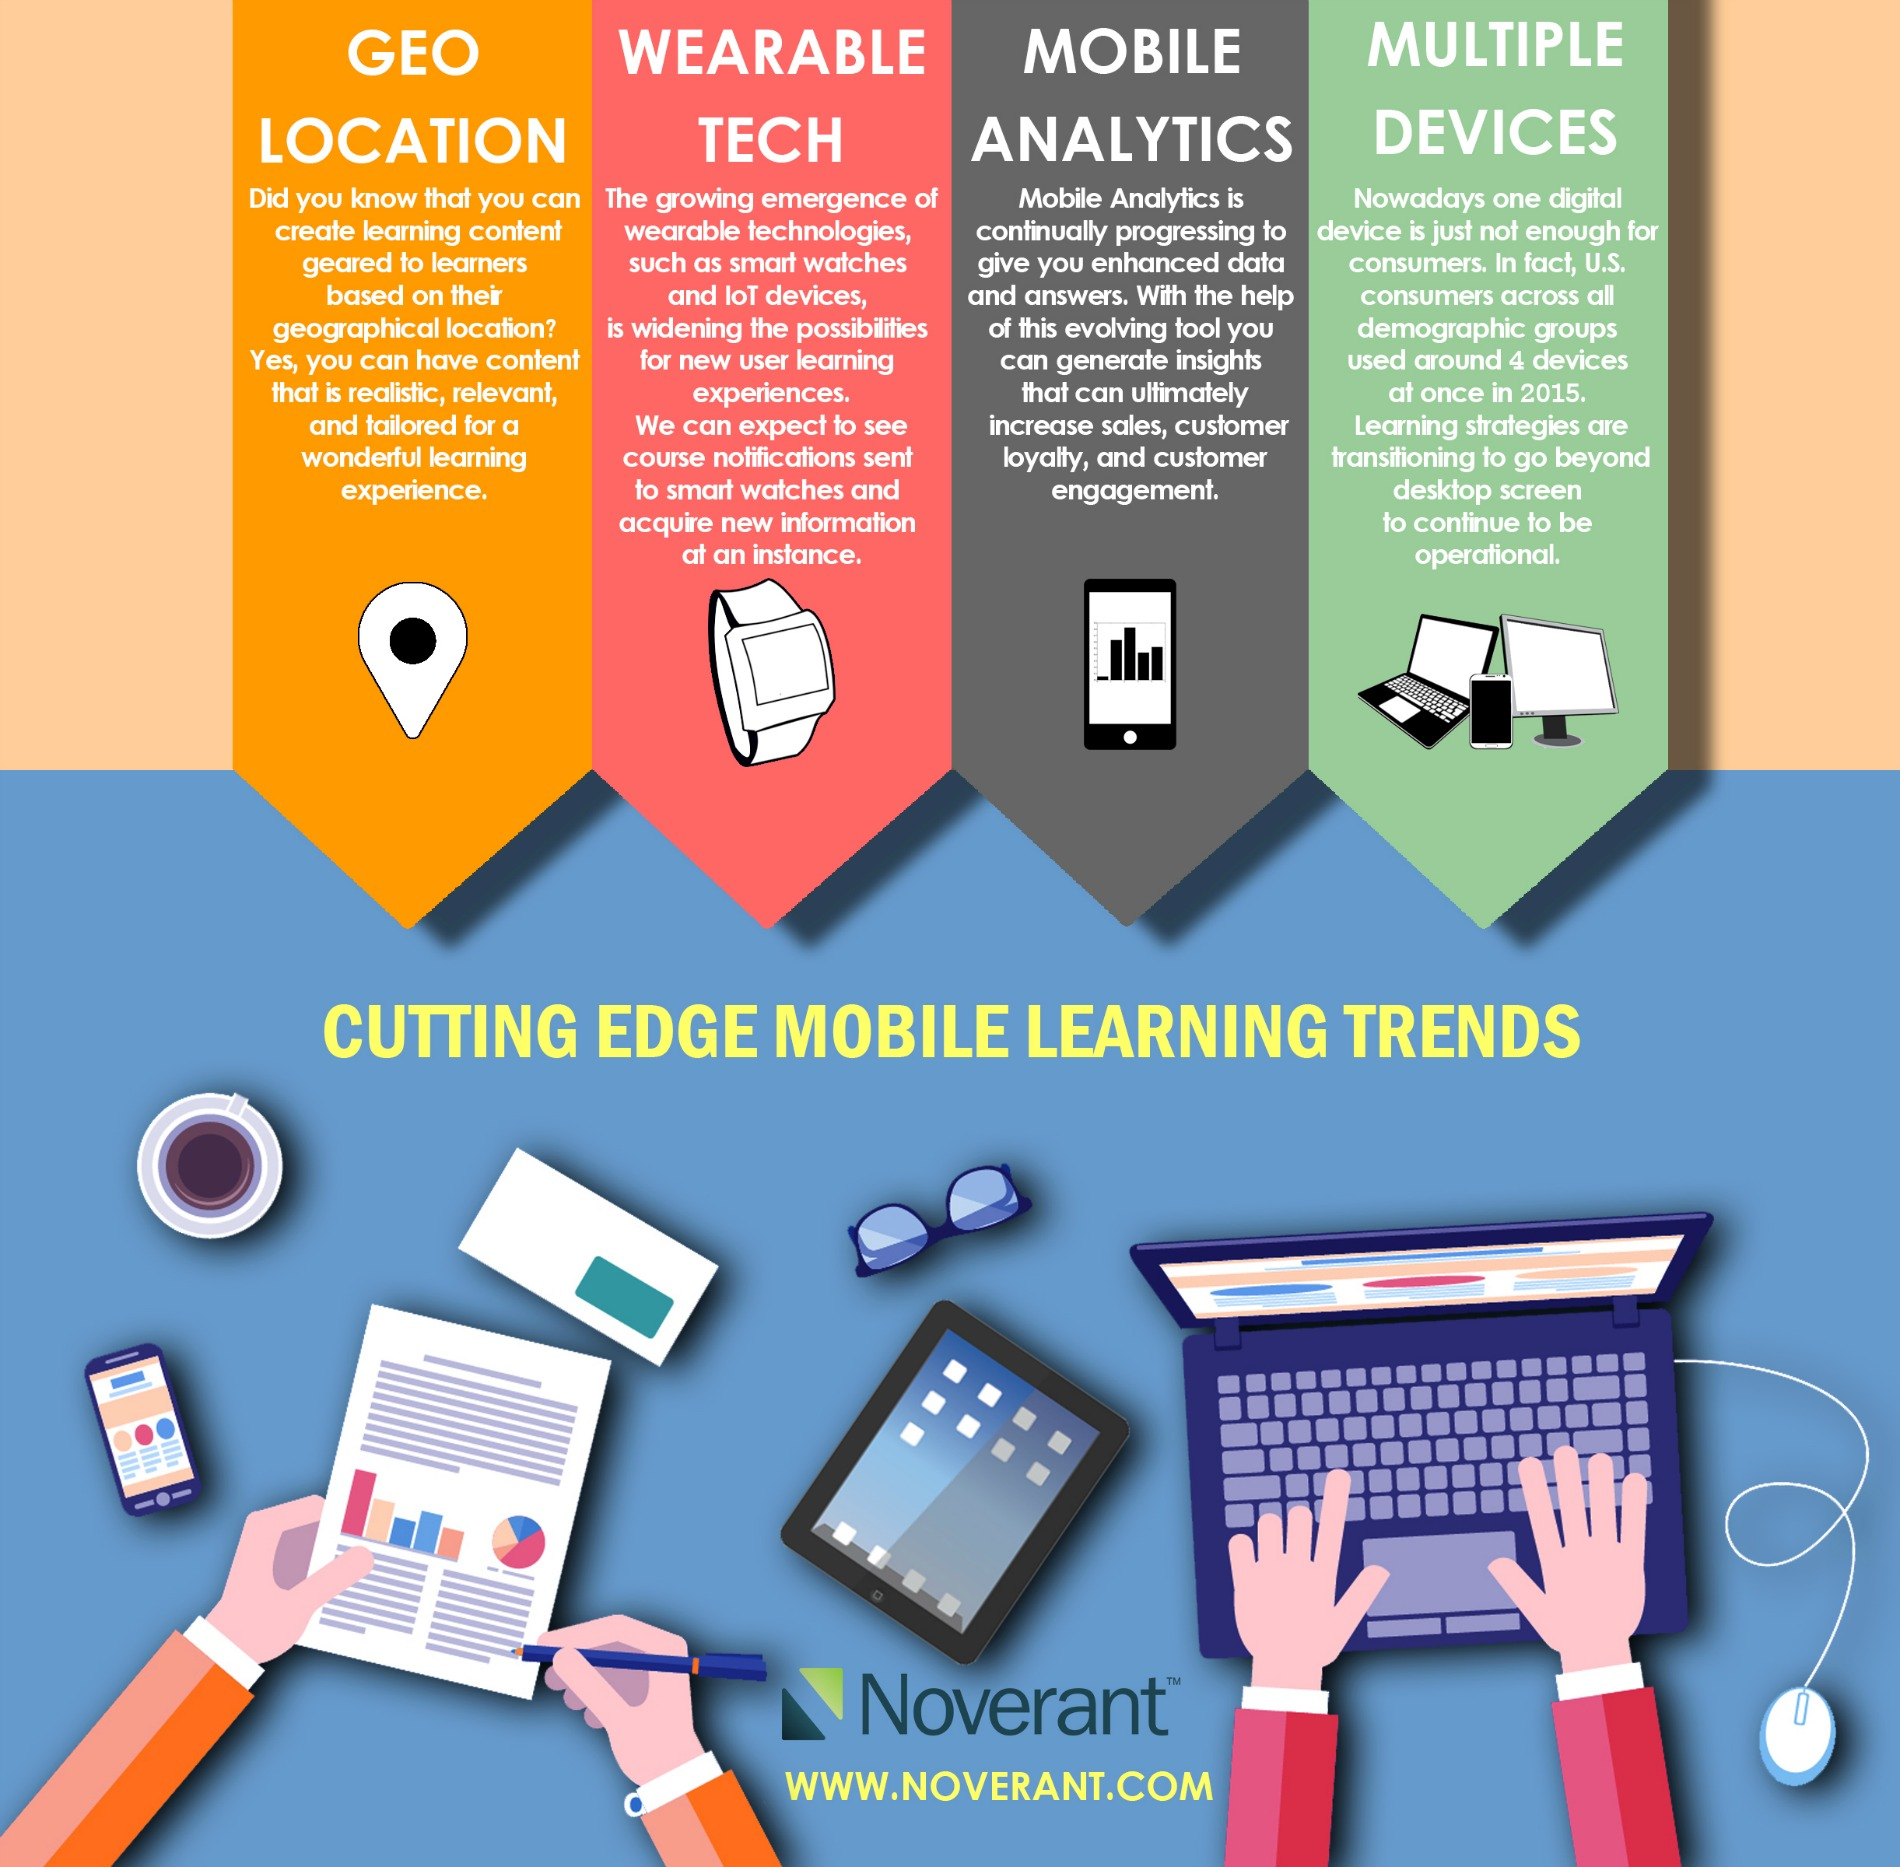 Noverant's Cutting Edge Mobile Learning Trends